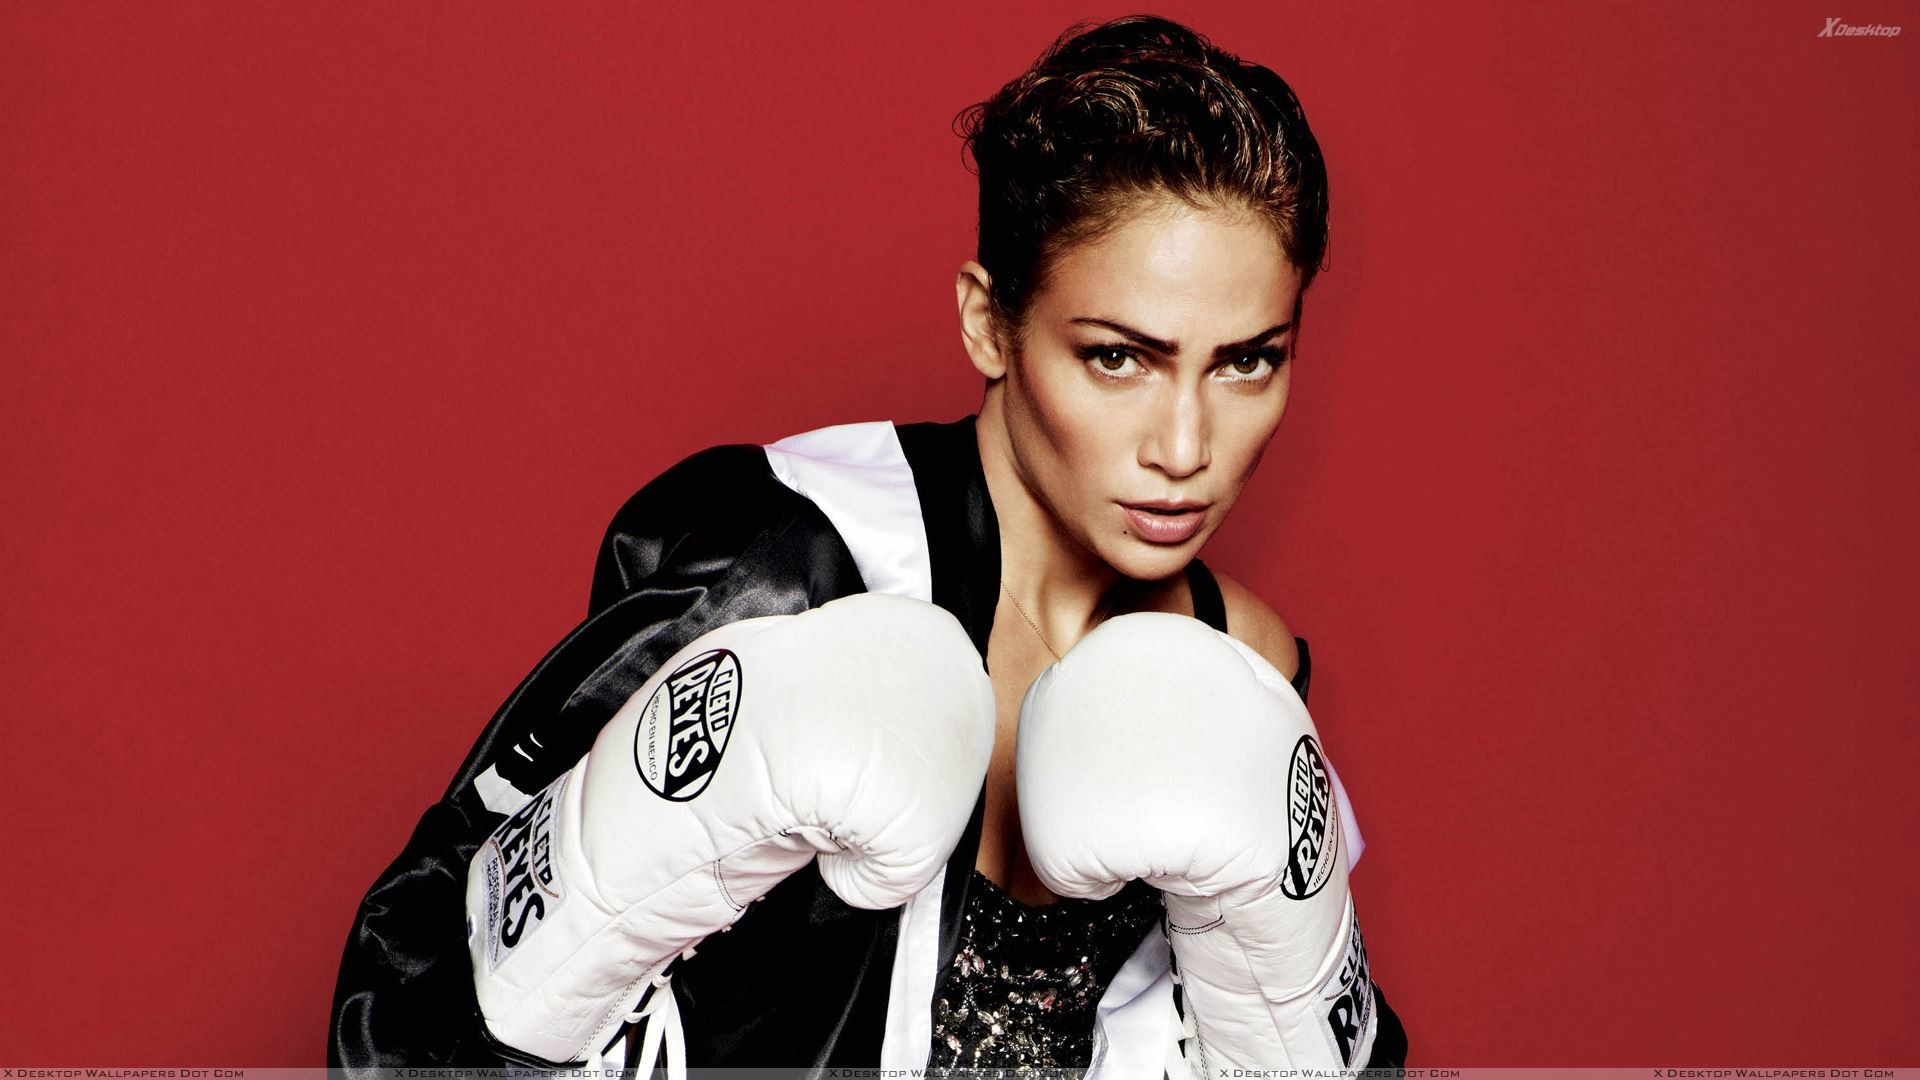 Res: 1920x1080, Jennifer Lopez Boxing Gloves In Hand At Mario Testino Photoshoot